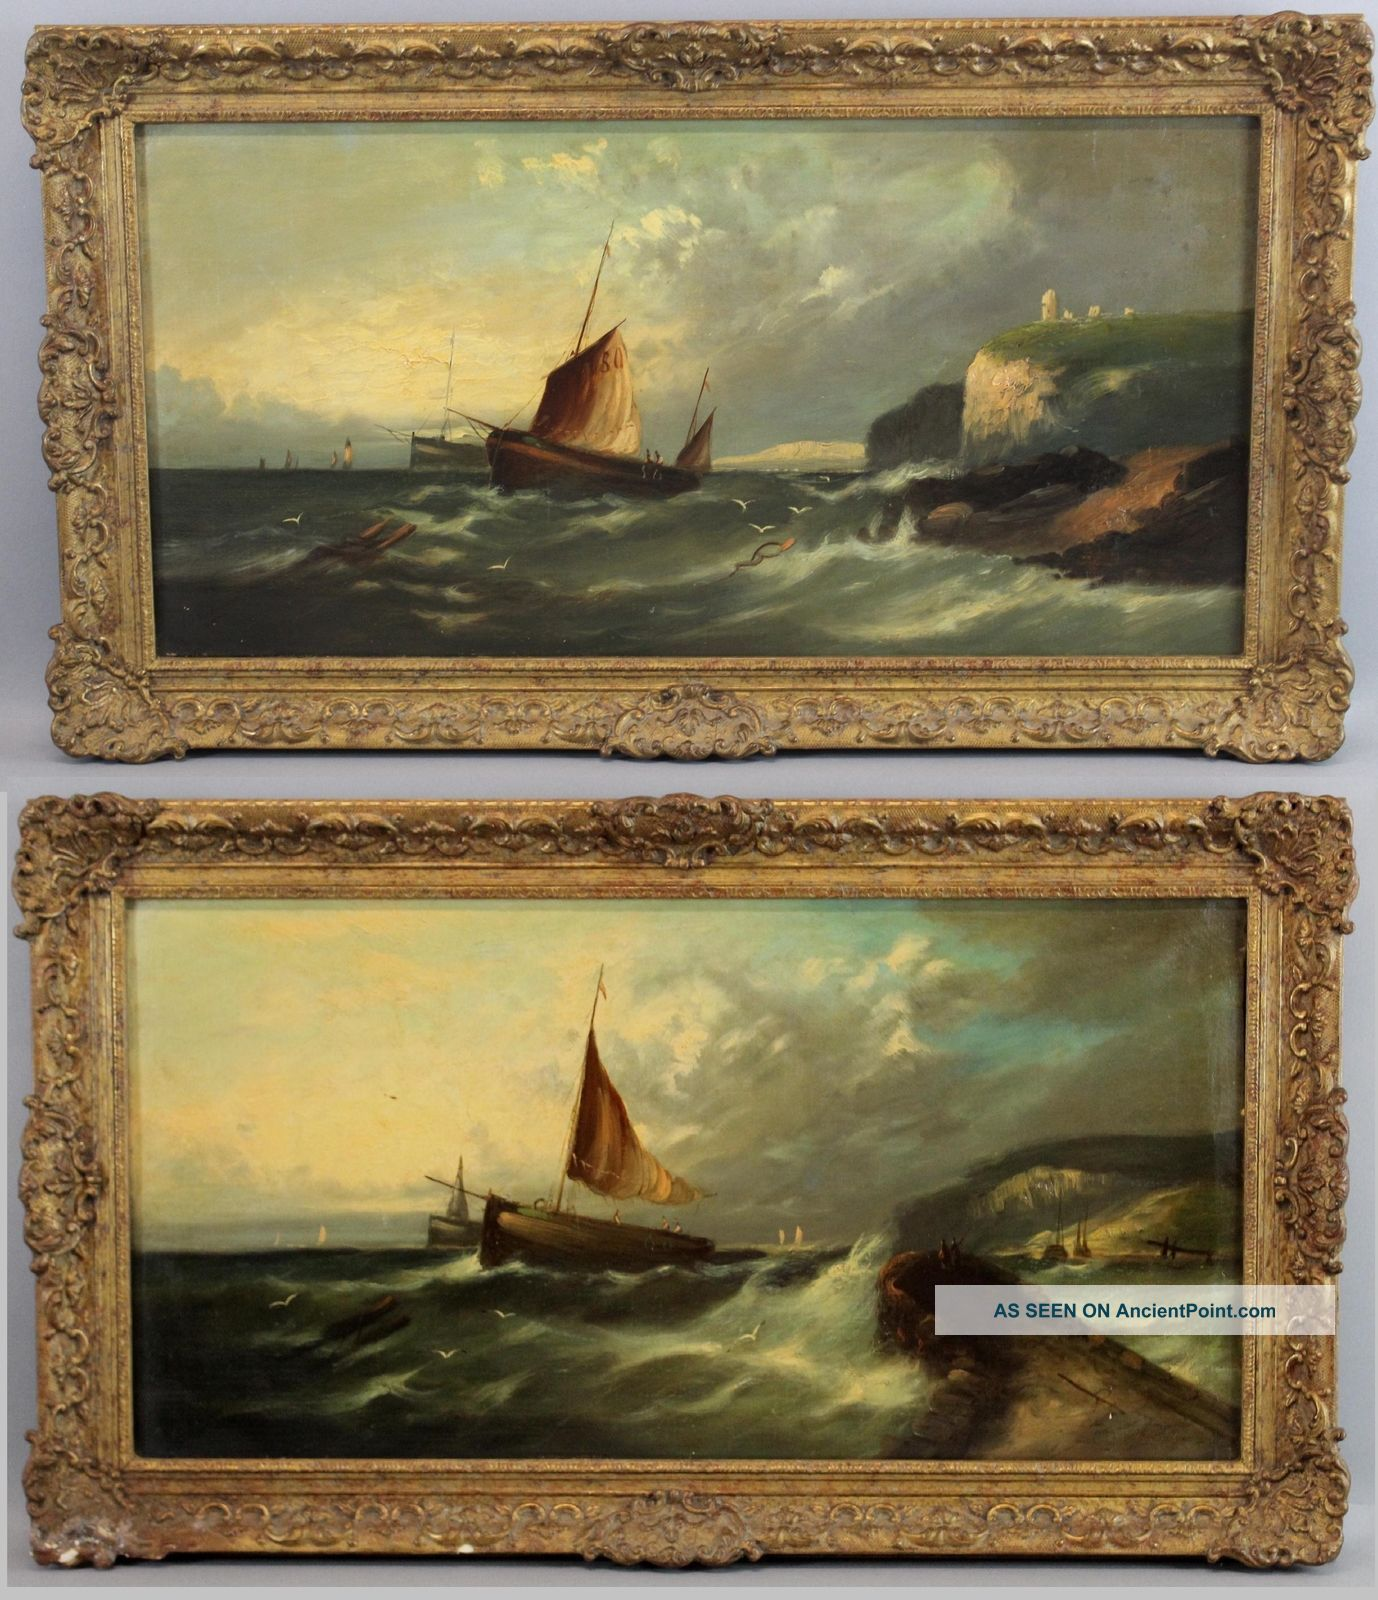 Pair Antique 19thc Signed Sailboat Seascape Maritime O/c American Oil Paintings Other Maritime Antiques photo